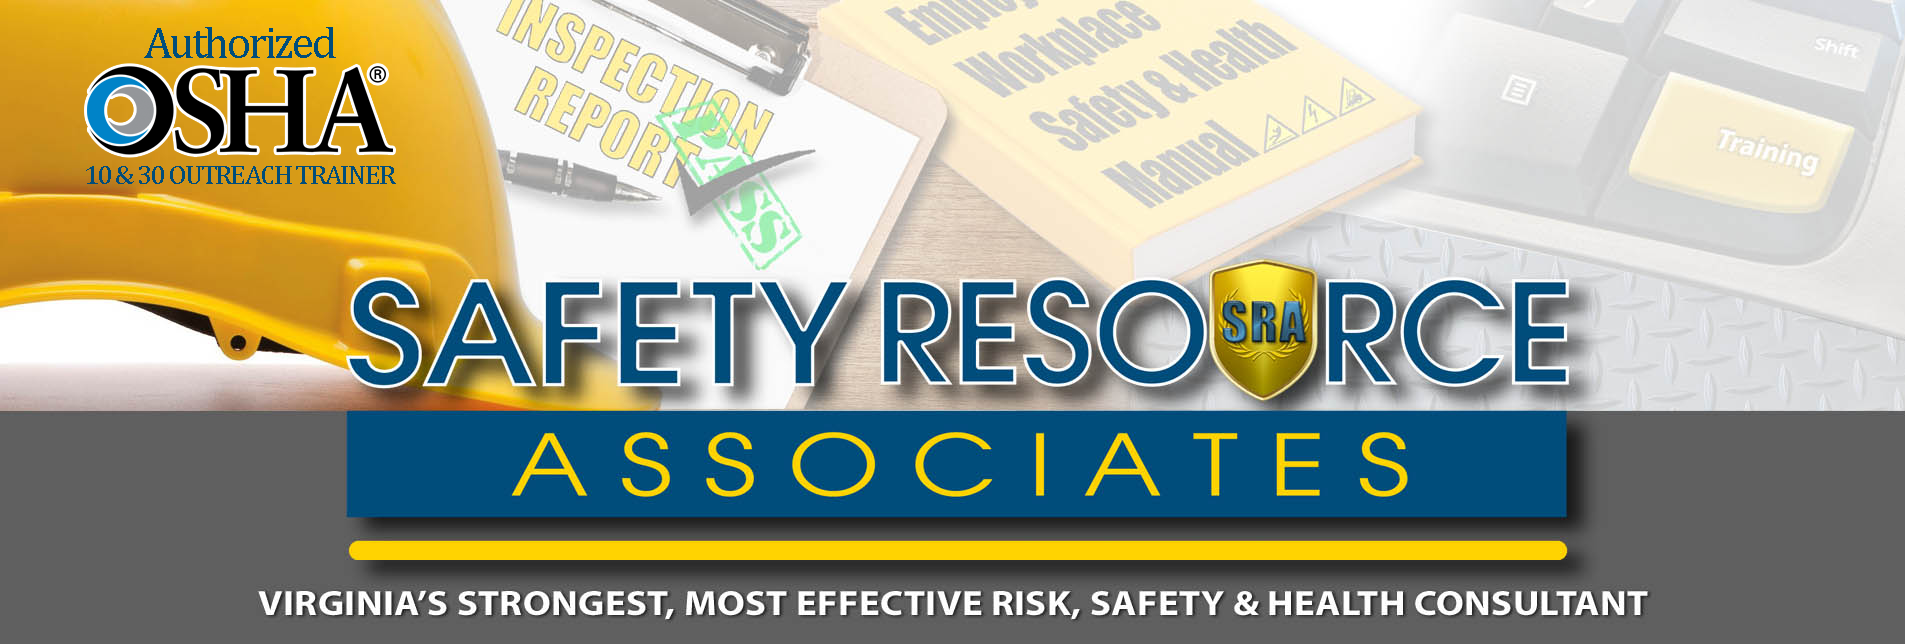 Safety Resource Associates, VIRGINIA'S strongest, most effective Risk, Safety & Health Consultant